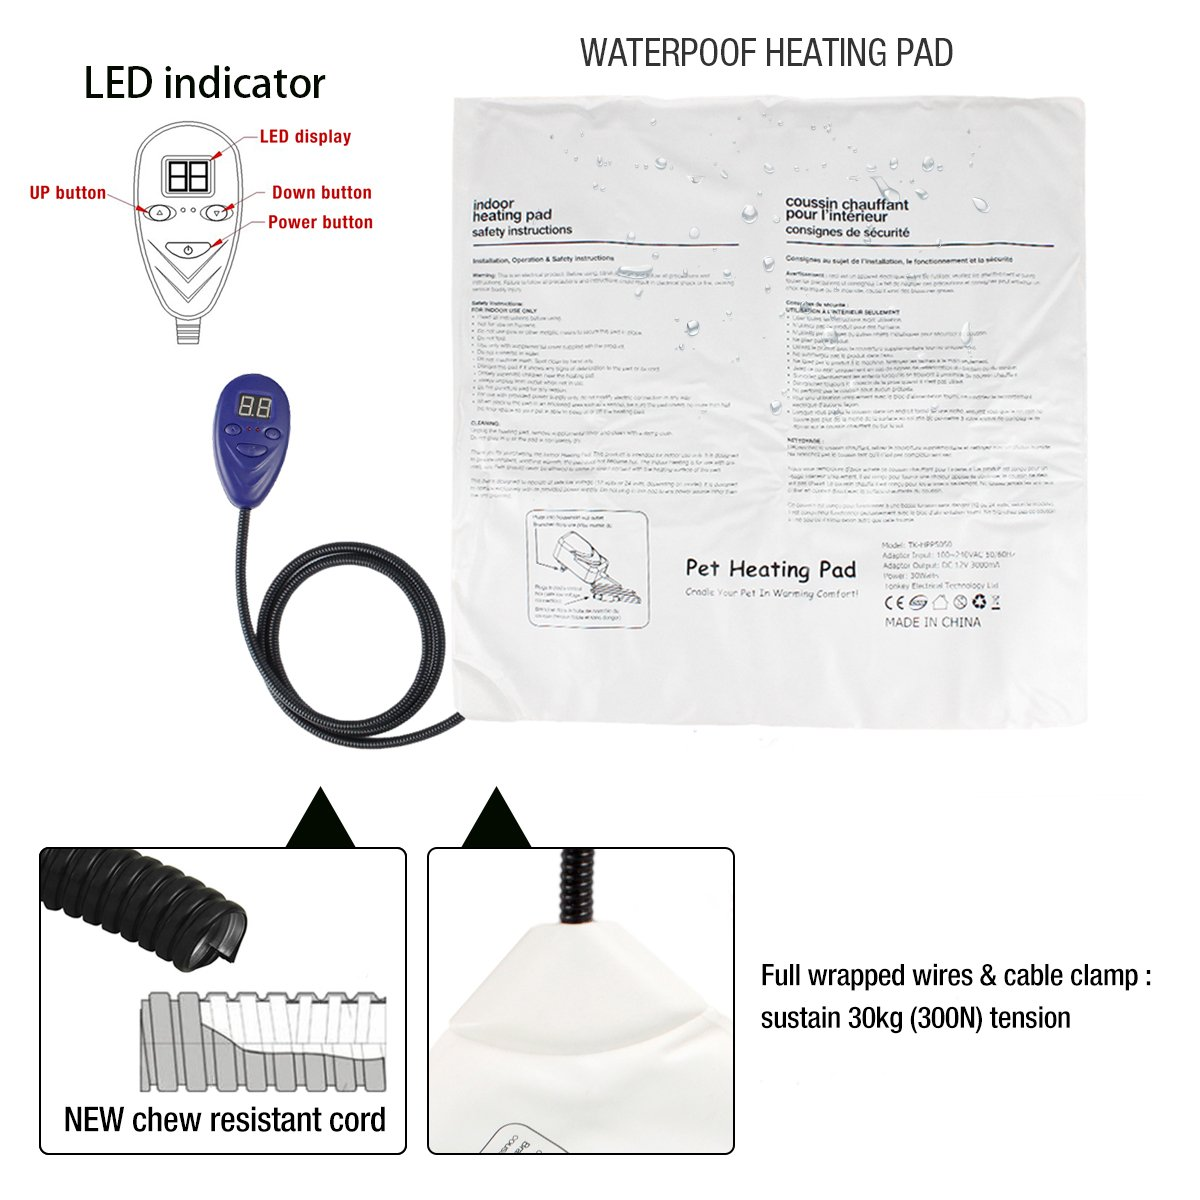 Electrical Wiring Diagram Heating Pad Expert Schematics Central Boiler Amazon Com Enjoying Dog Pet Bed Warmer With Chew